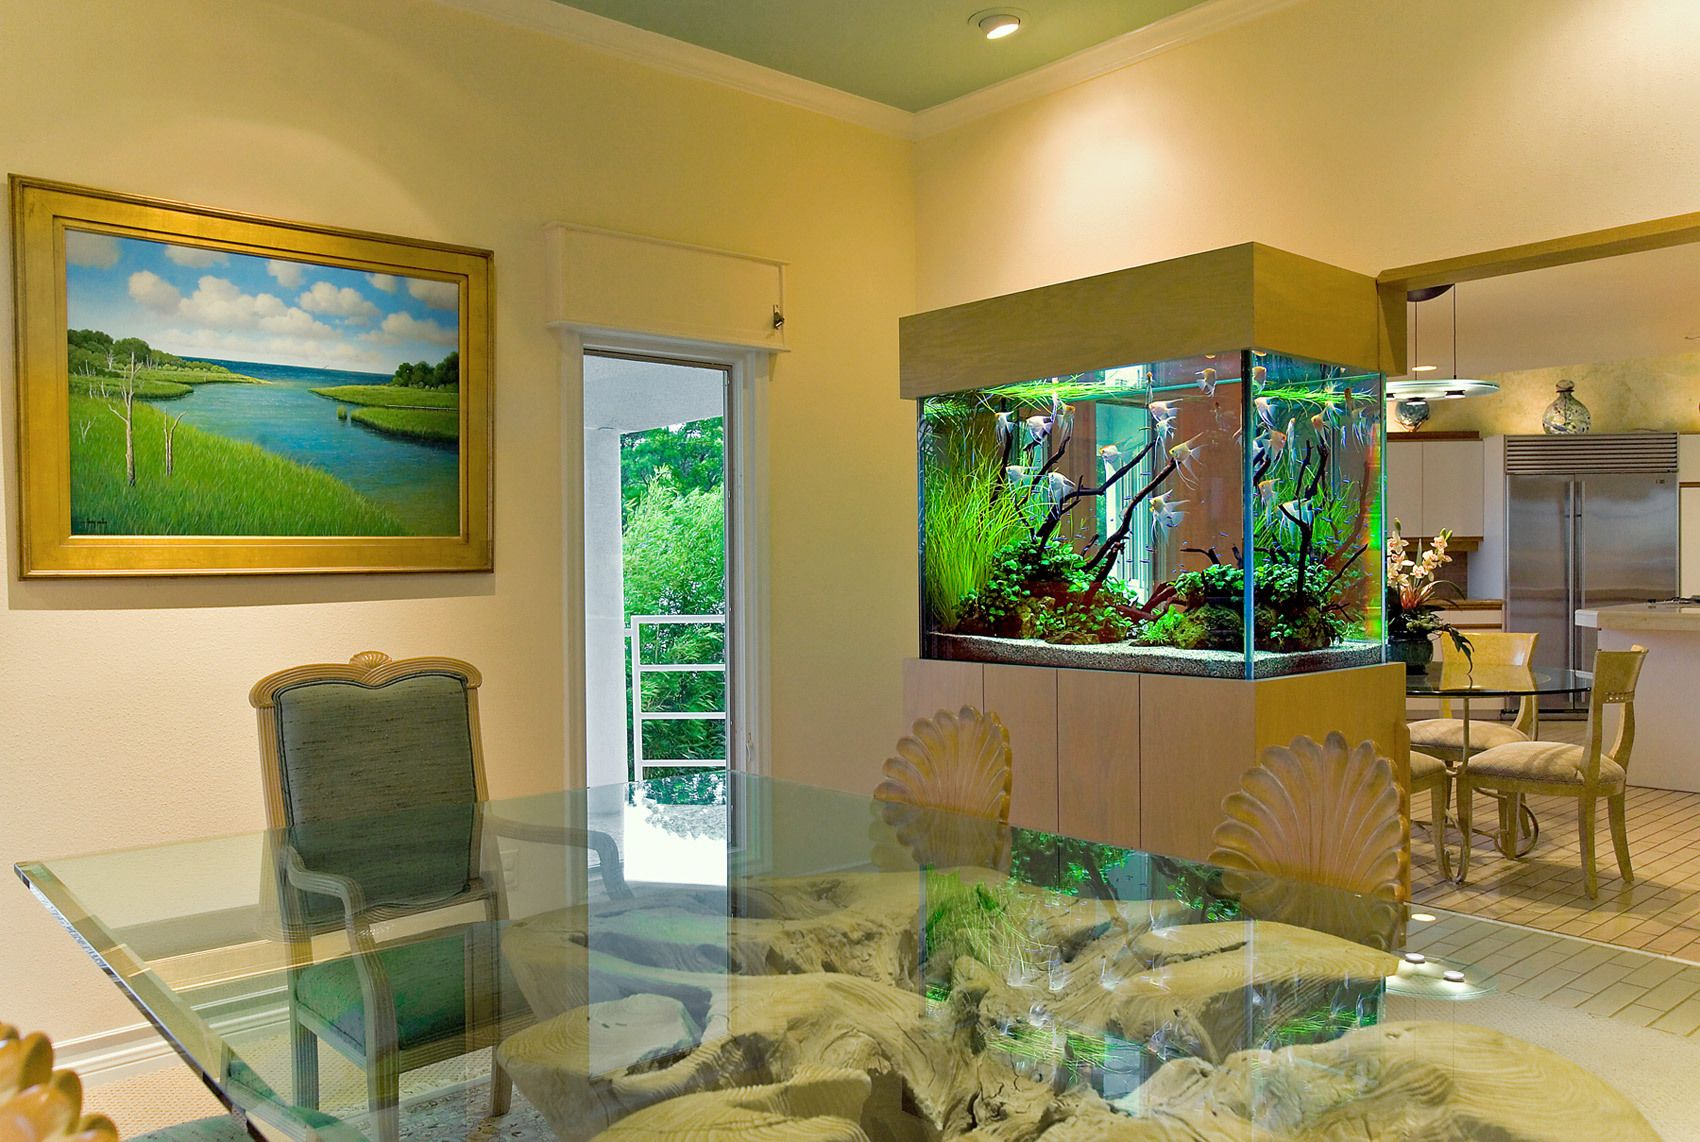 Home Aquarium Design Ideas: An Angelfish Live Planted Aquarium